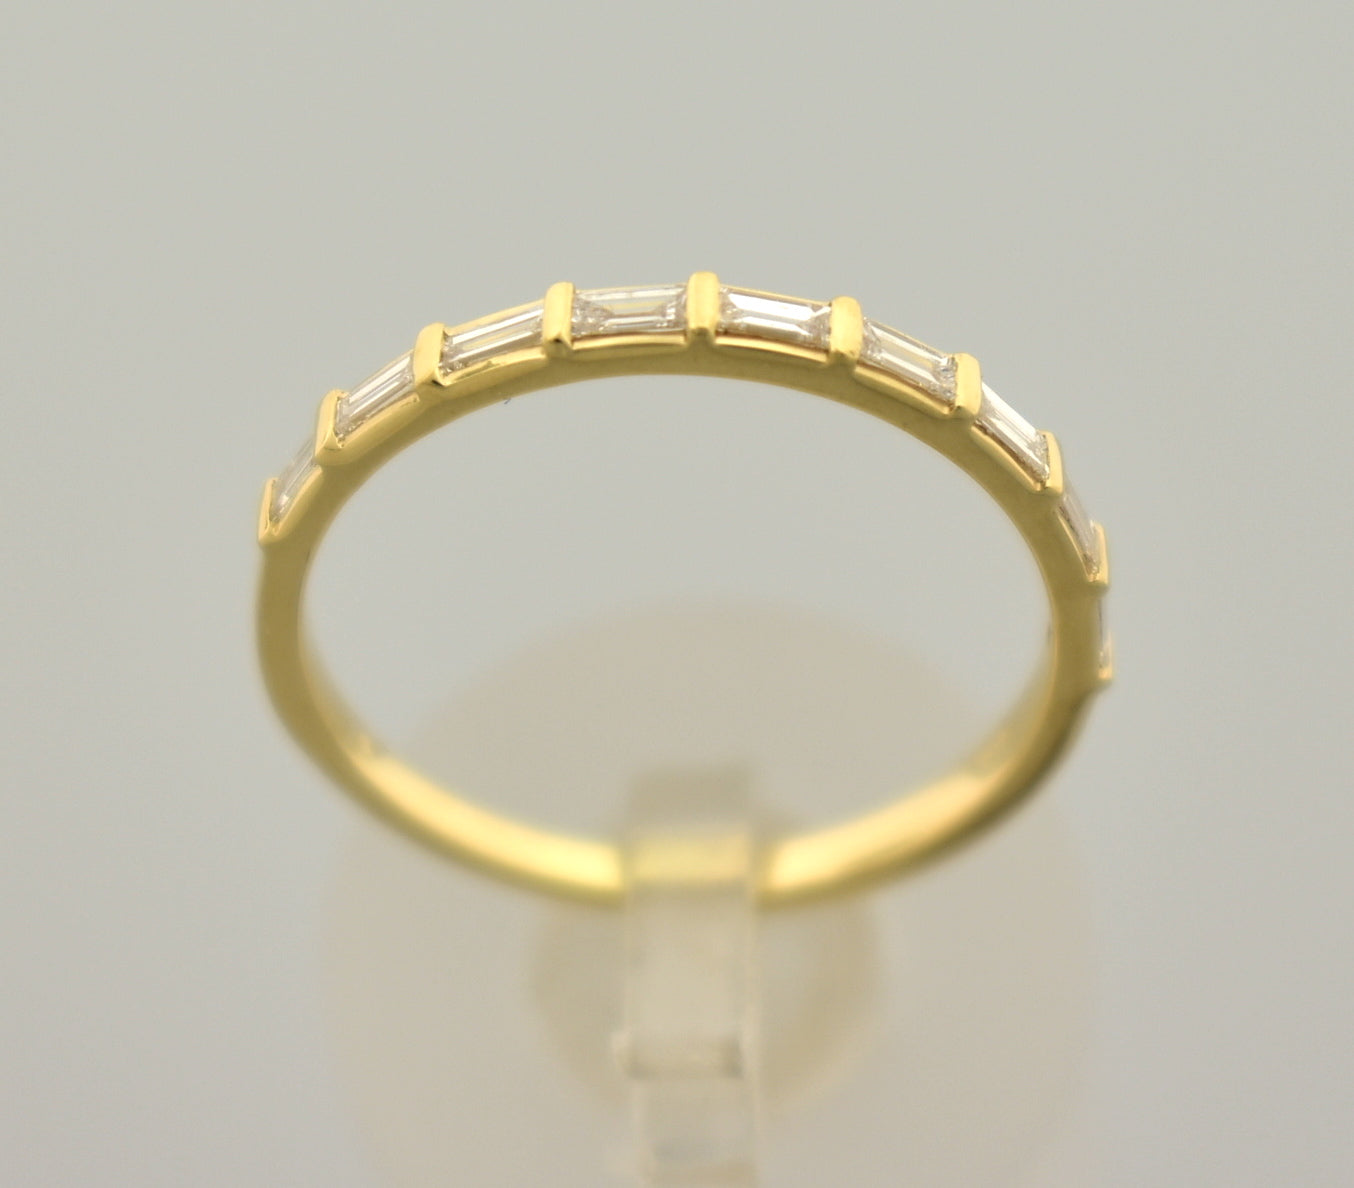 Platinum 14k Gold 1/4 CTW Diamond Baguette Wedding Anniversary Ring Band